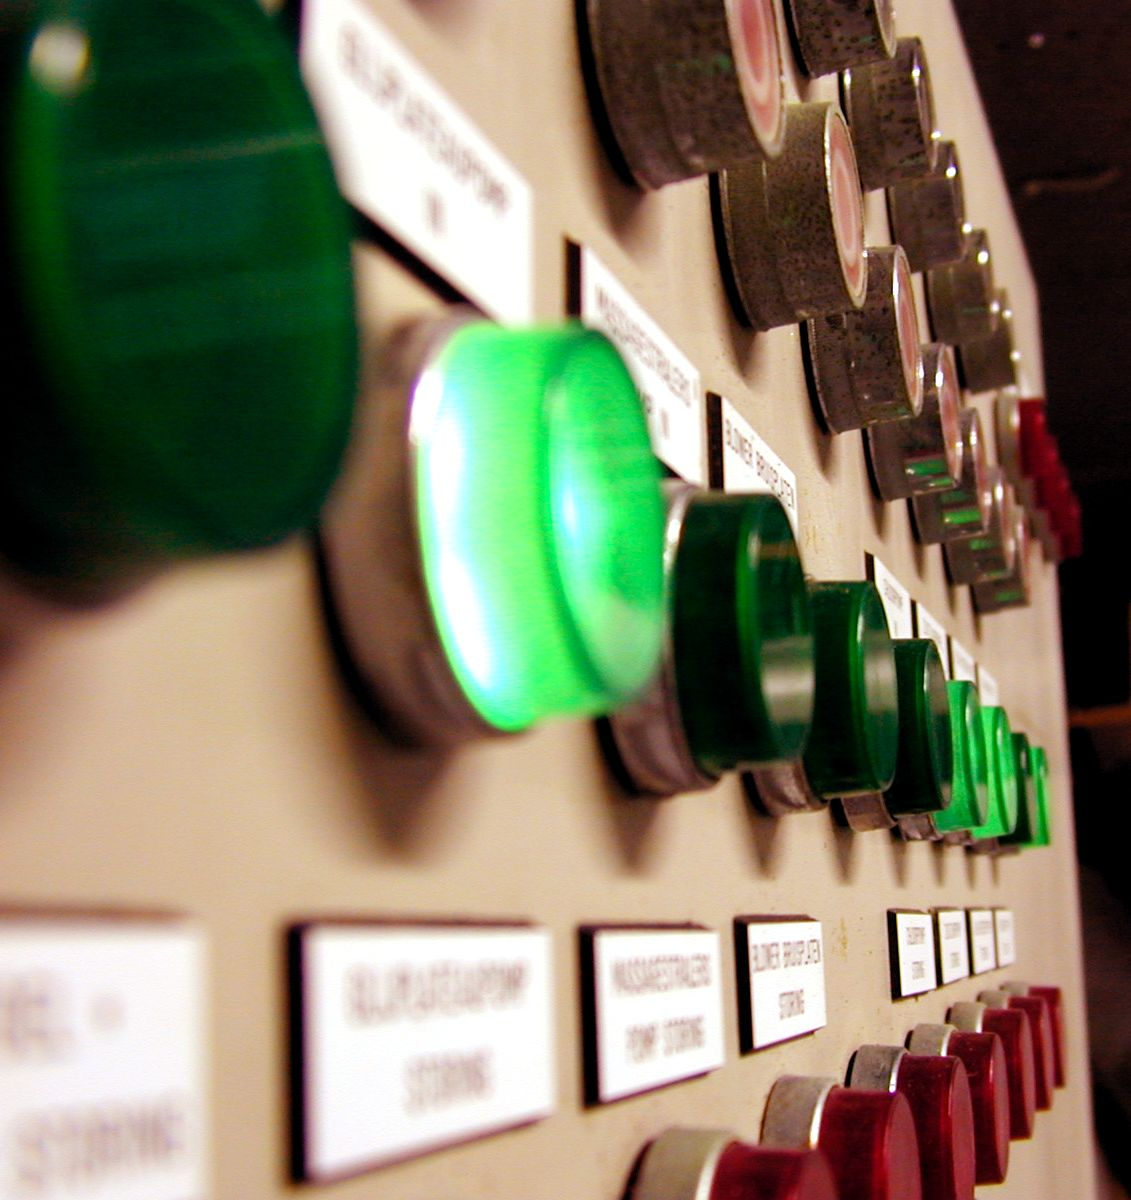 green button switch panel switchpanle switchingpanel light lighting up buttons image